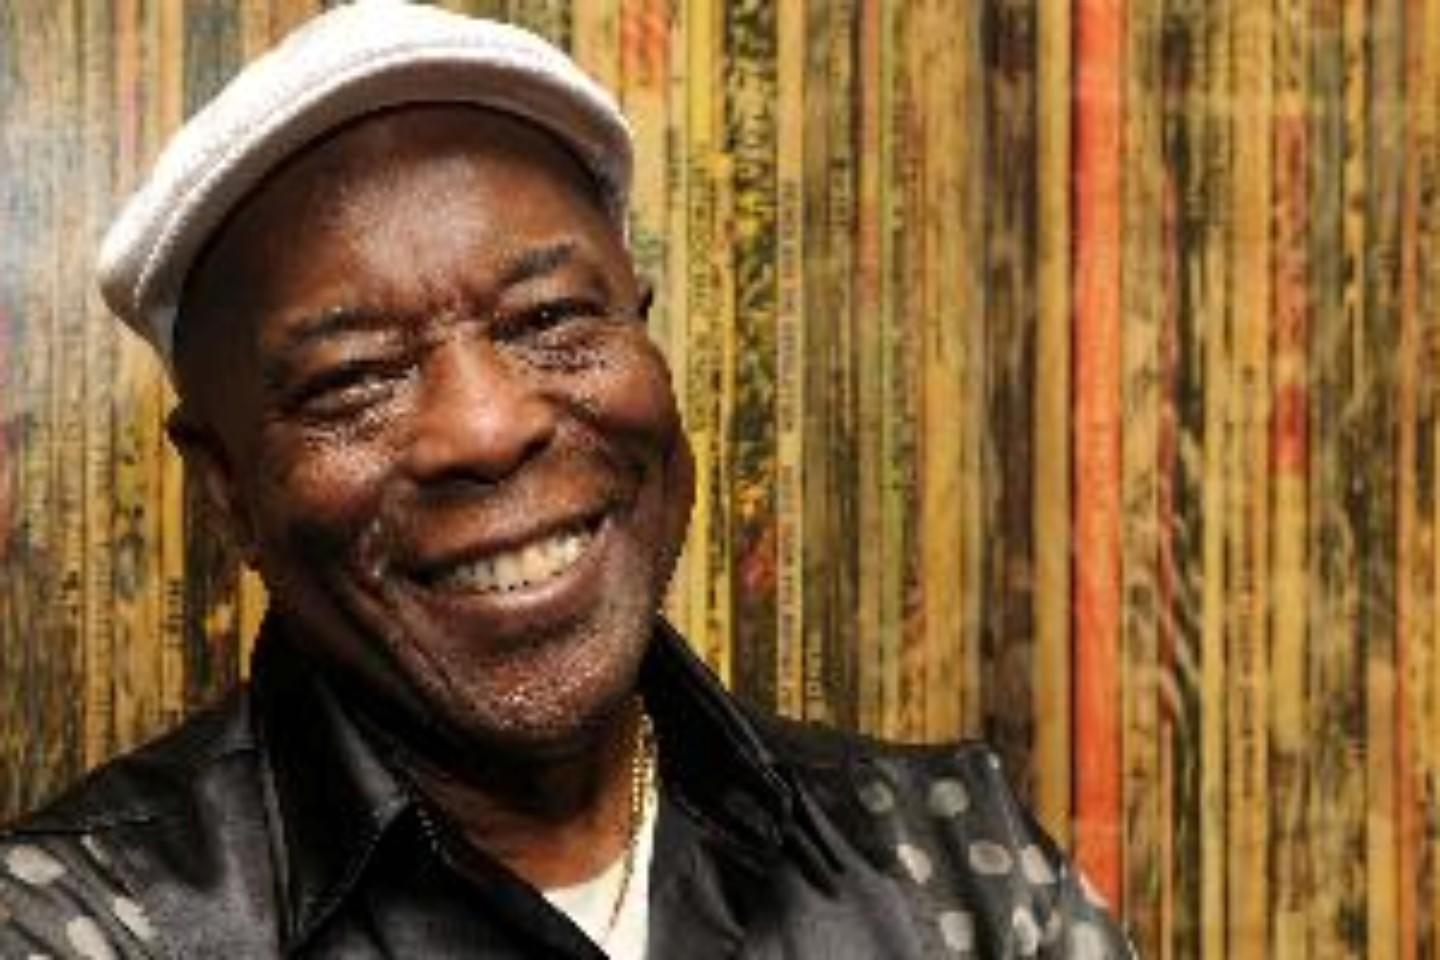 Buddy guy tour dates 2019